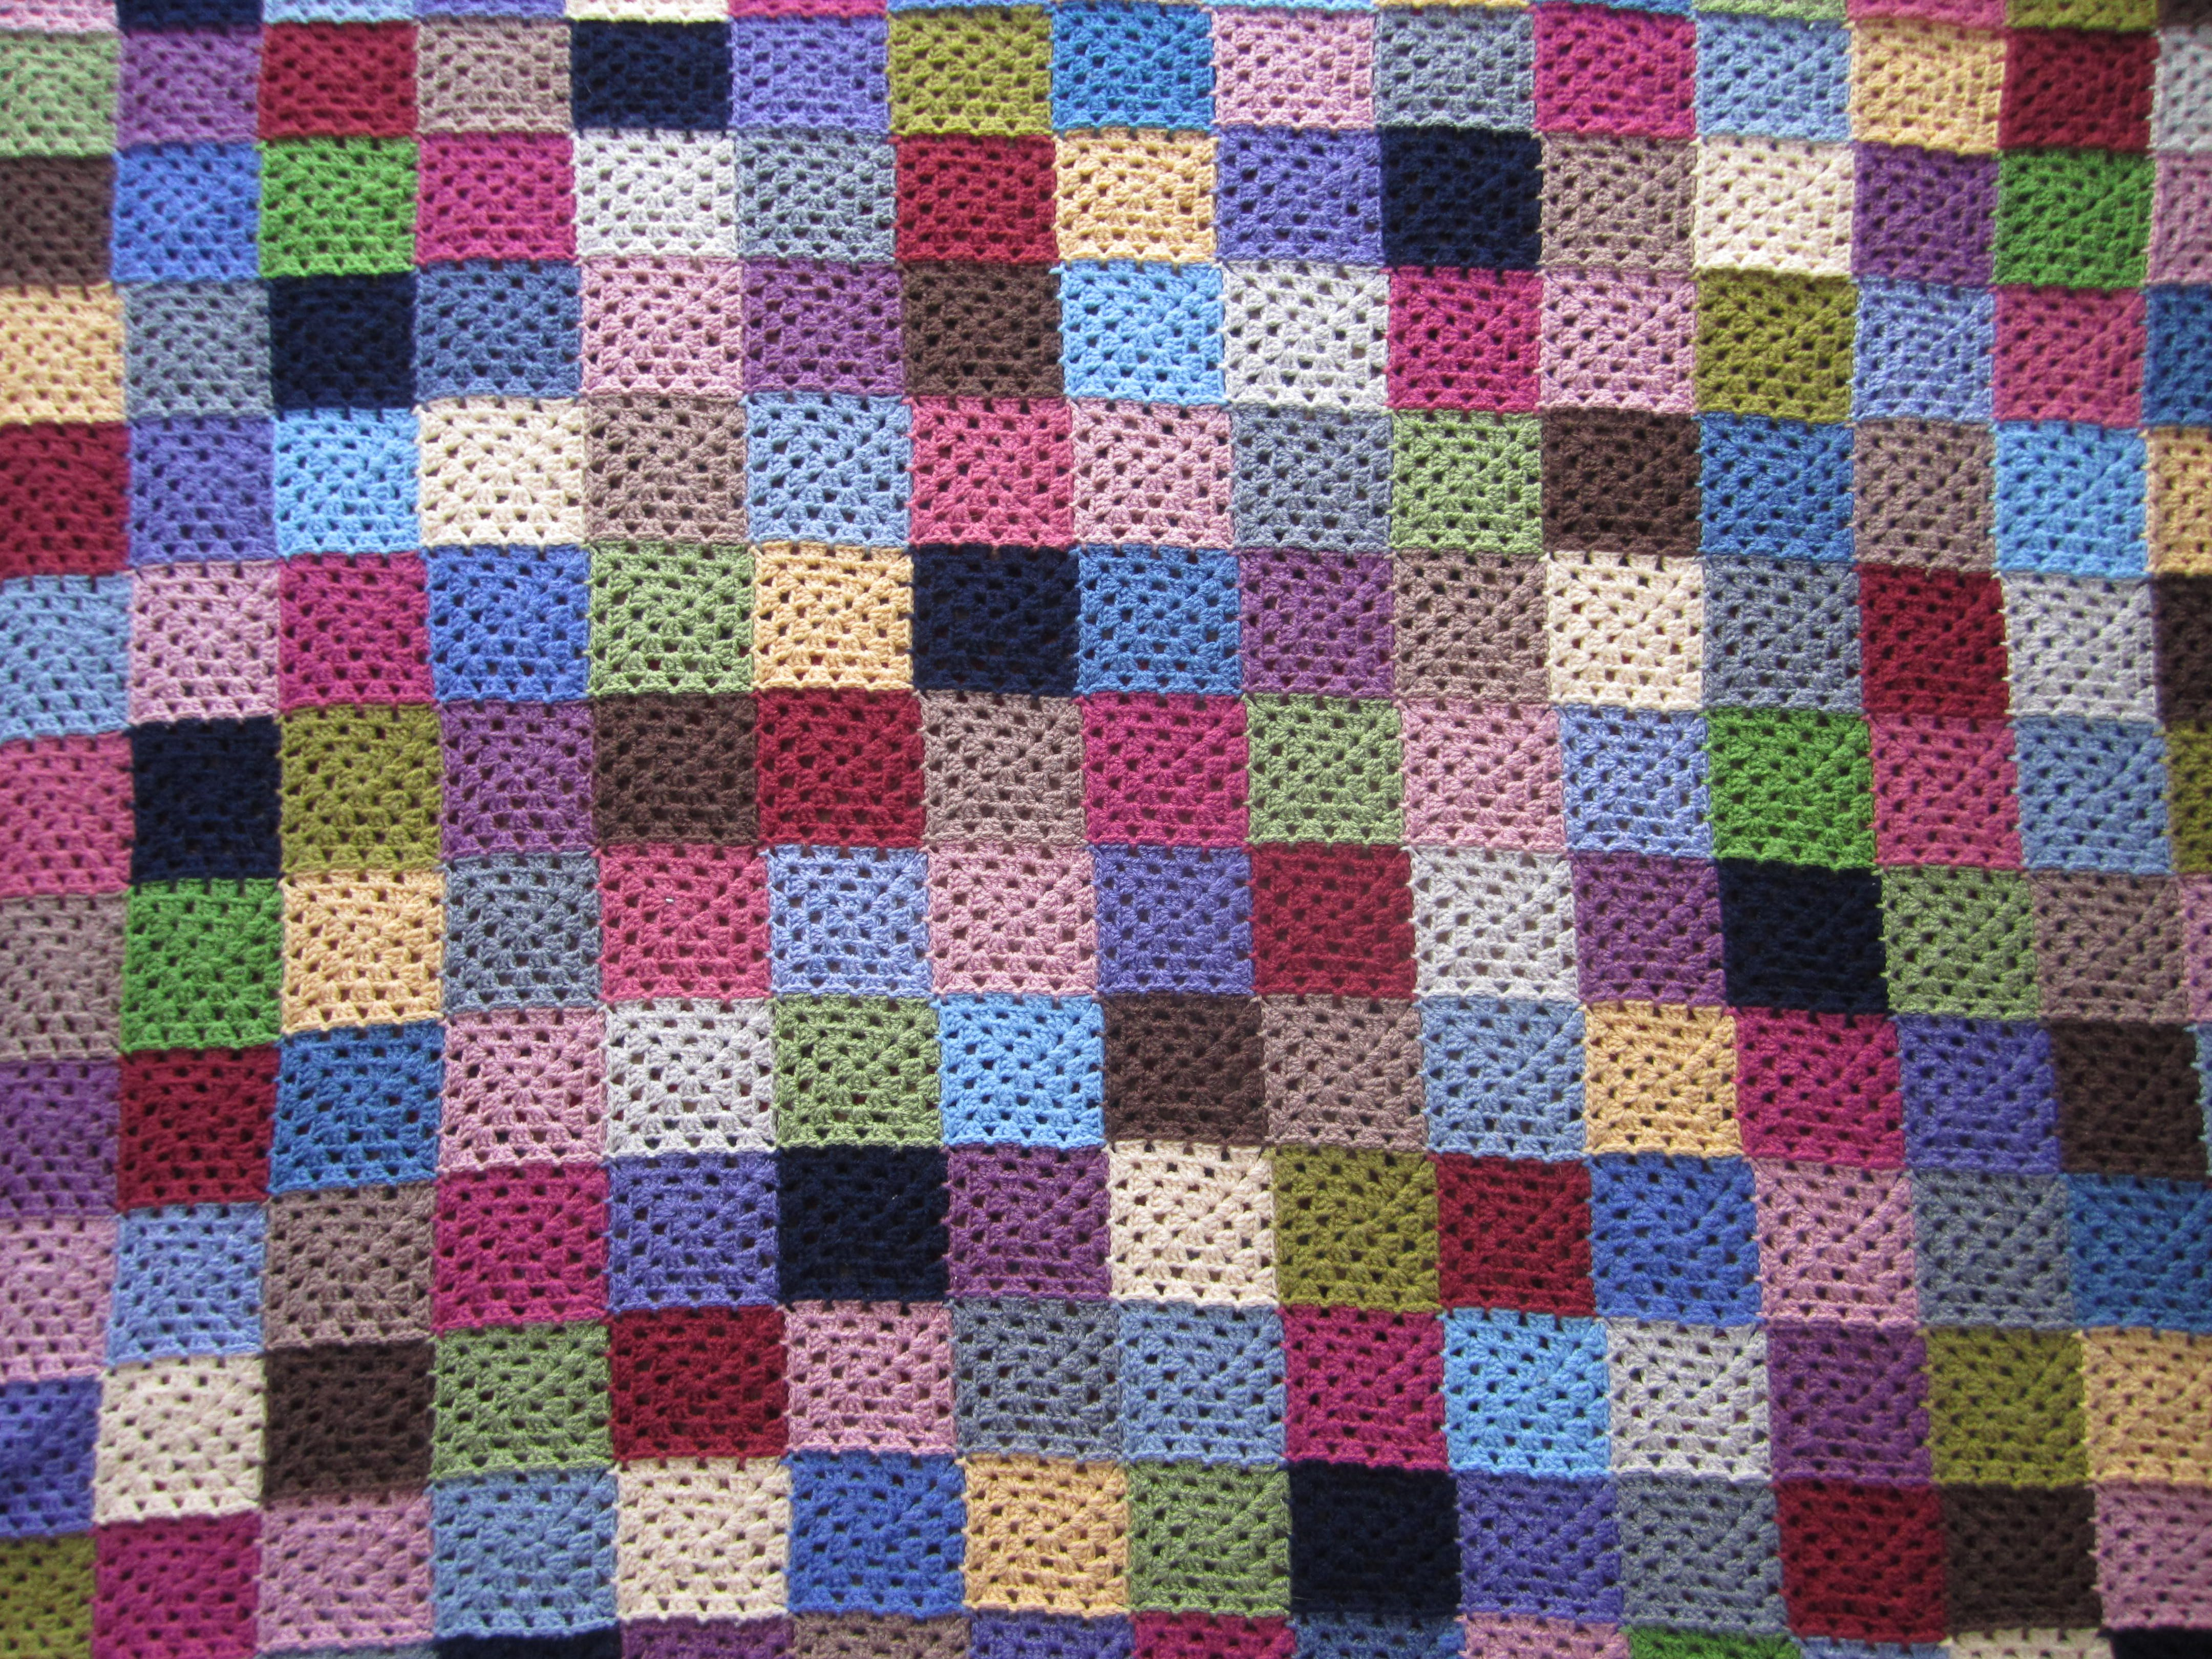 Granny square crochet solid colour blanket in stylecraft - perfect for using up odds and ends